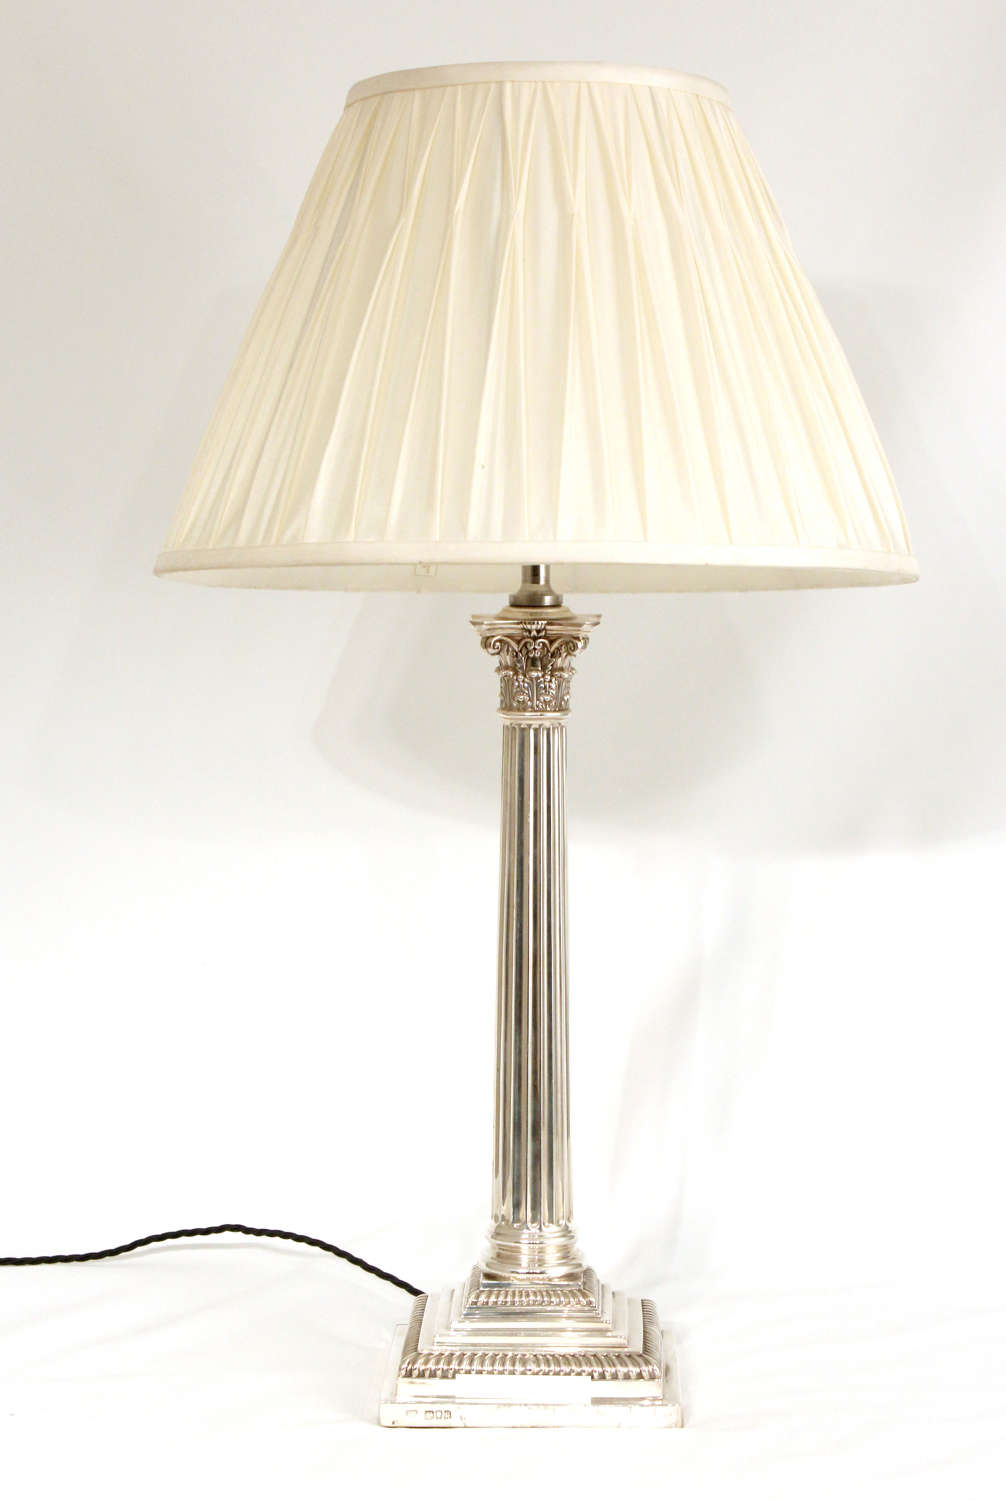 An Exceptional Edwardian Silver Table Lamp By Clark & Sewell